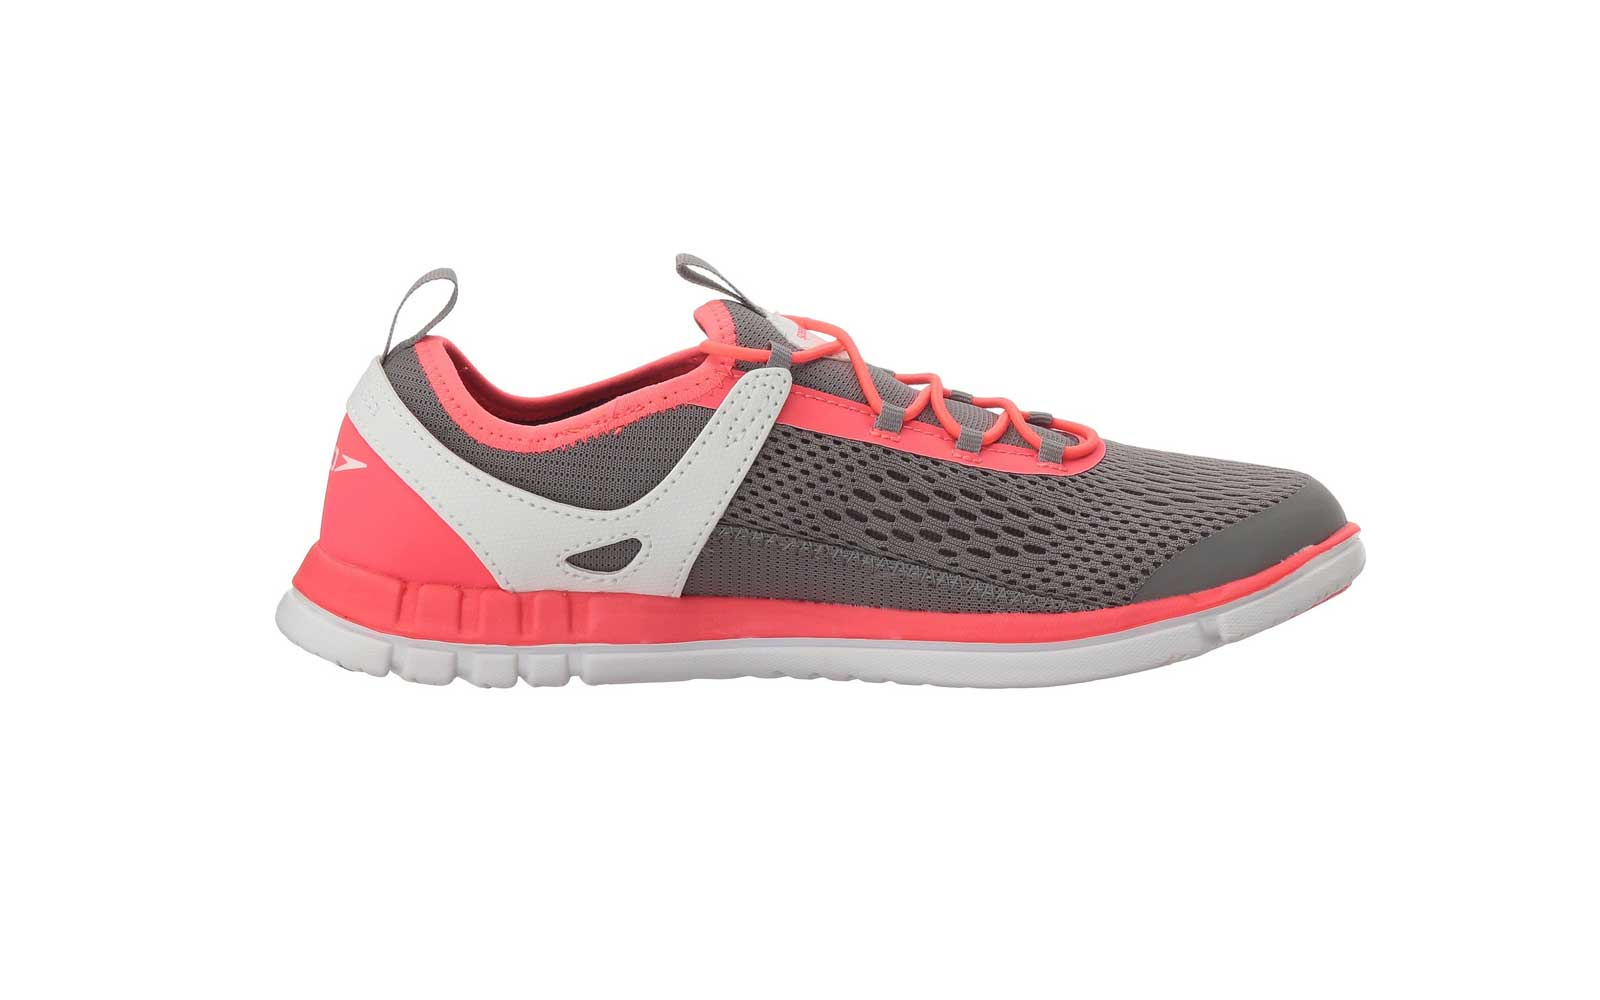 93fb022b0861 The Best Water Shoes for Women in 2019